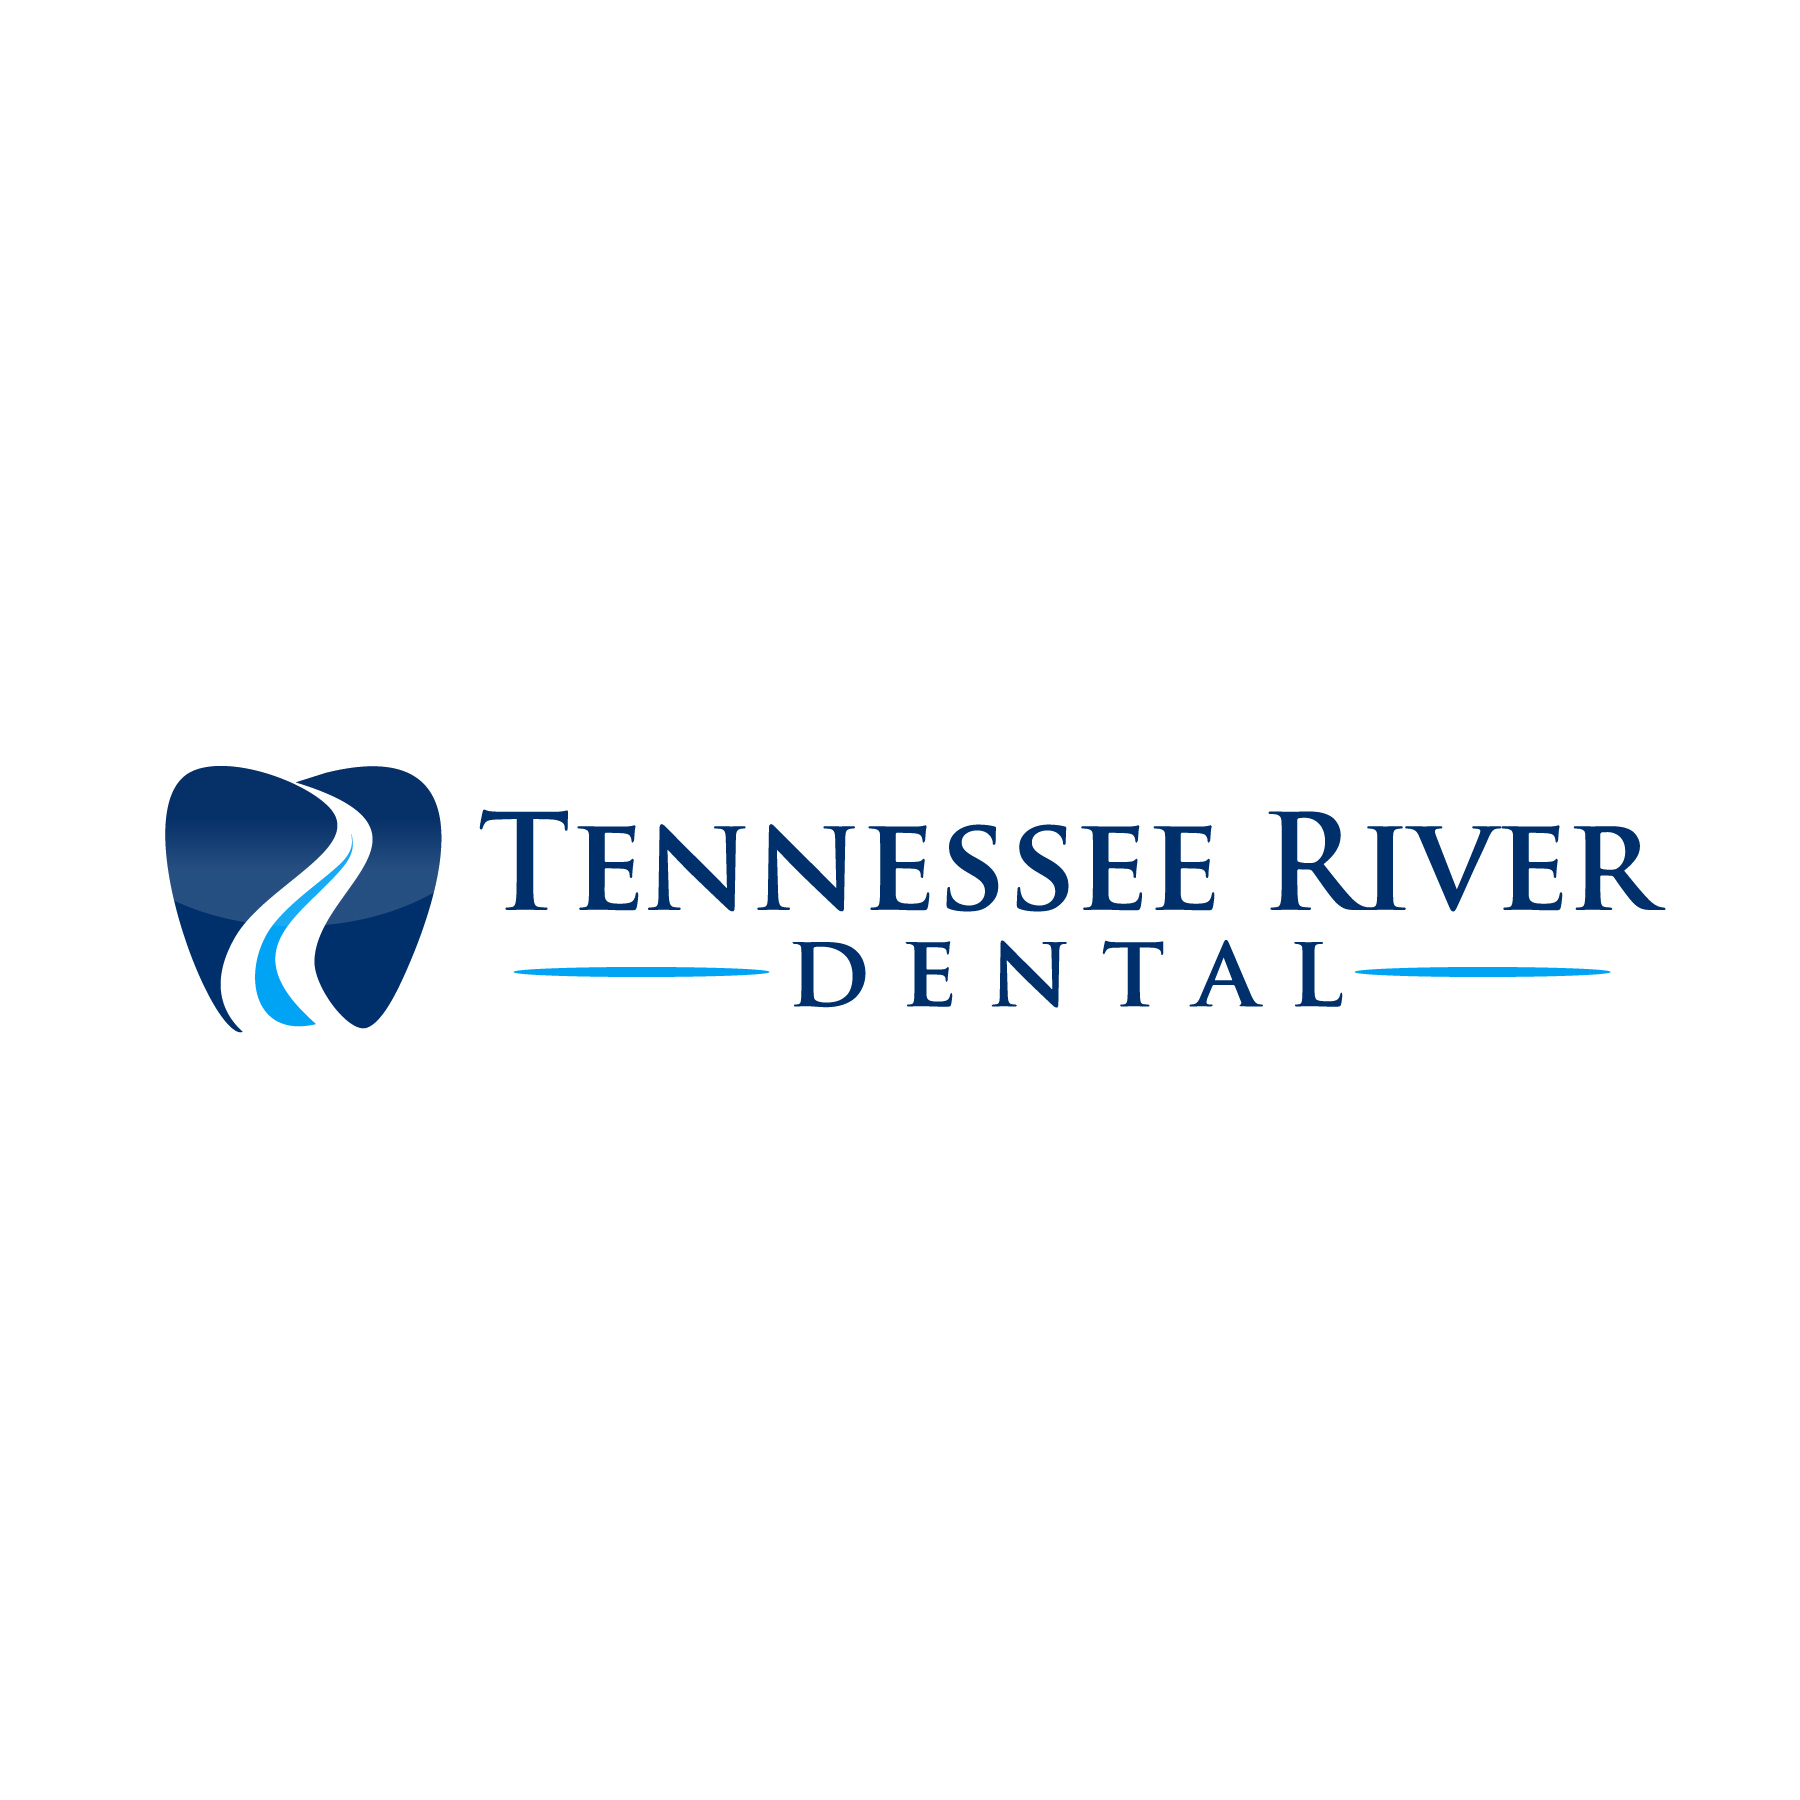 Tennessee River Dental